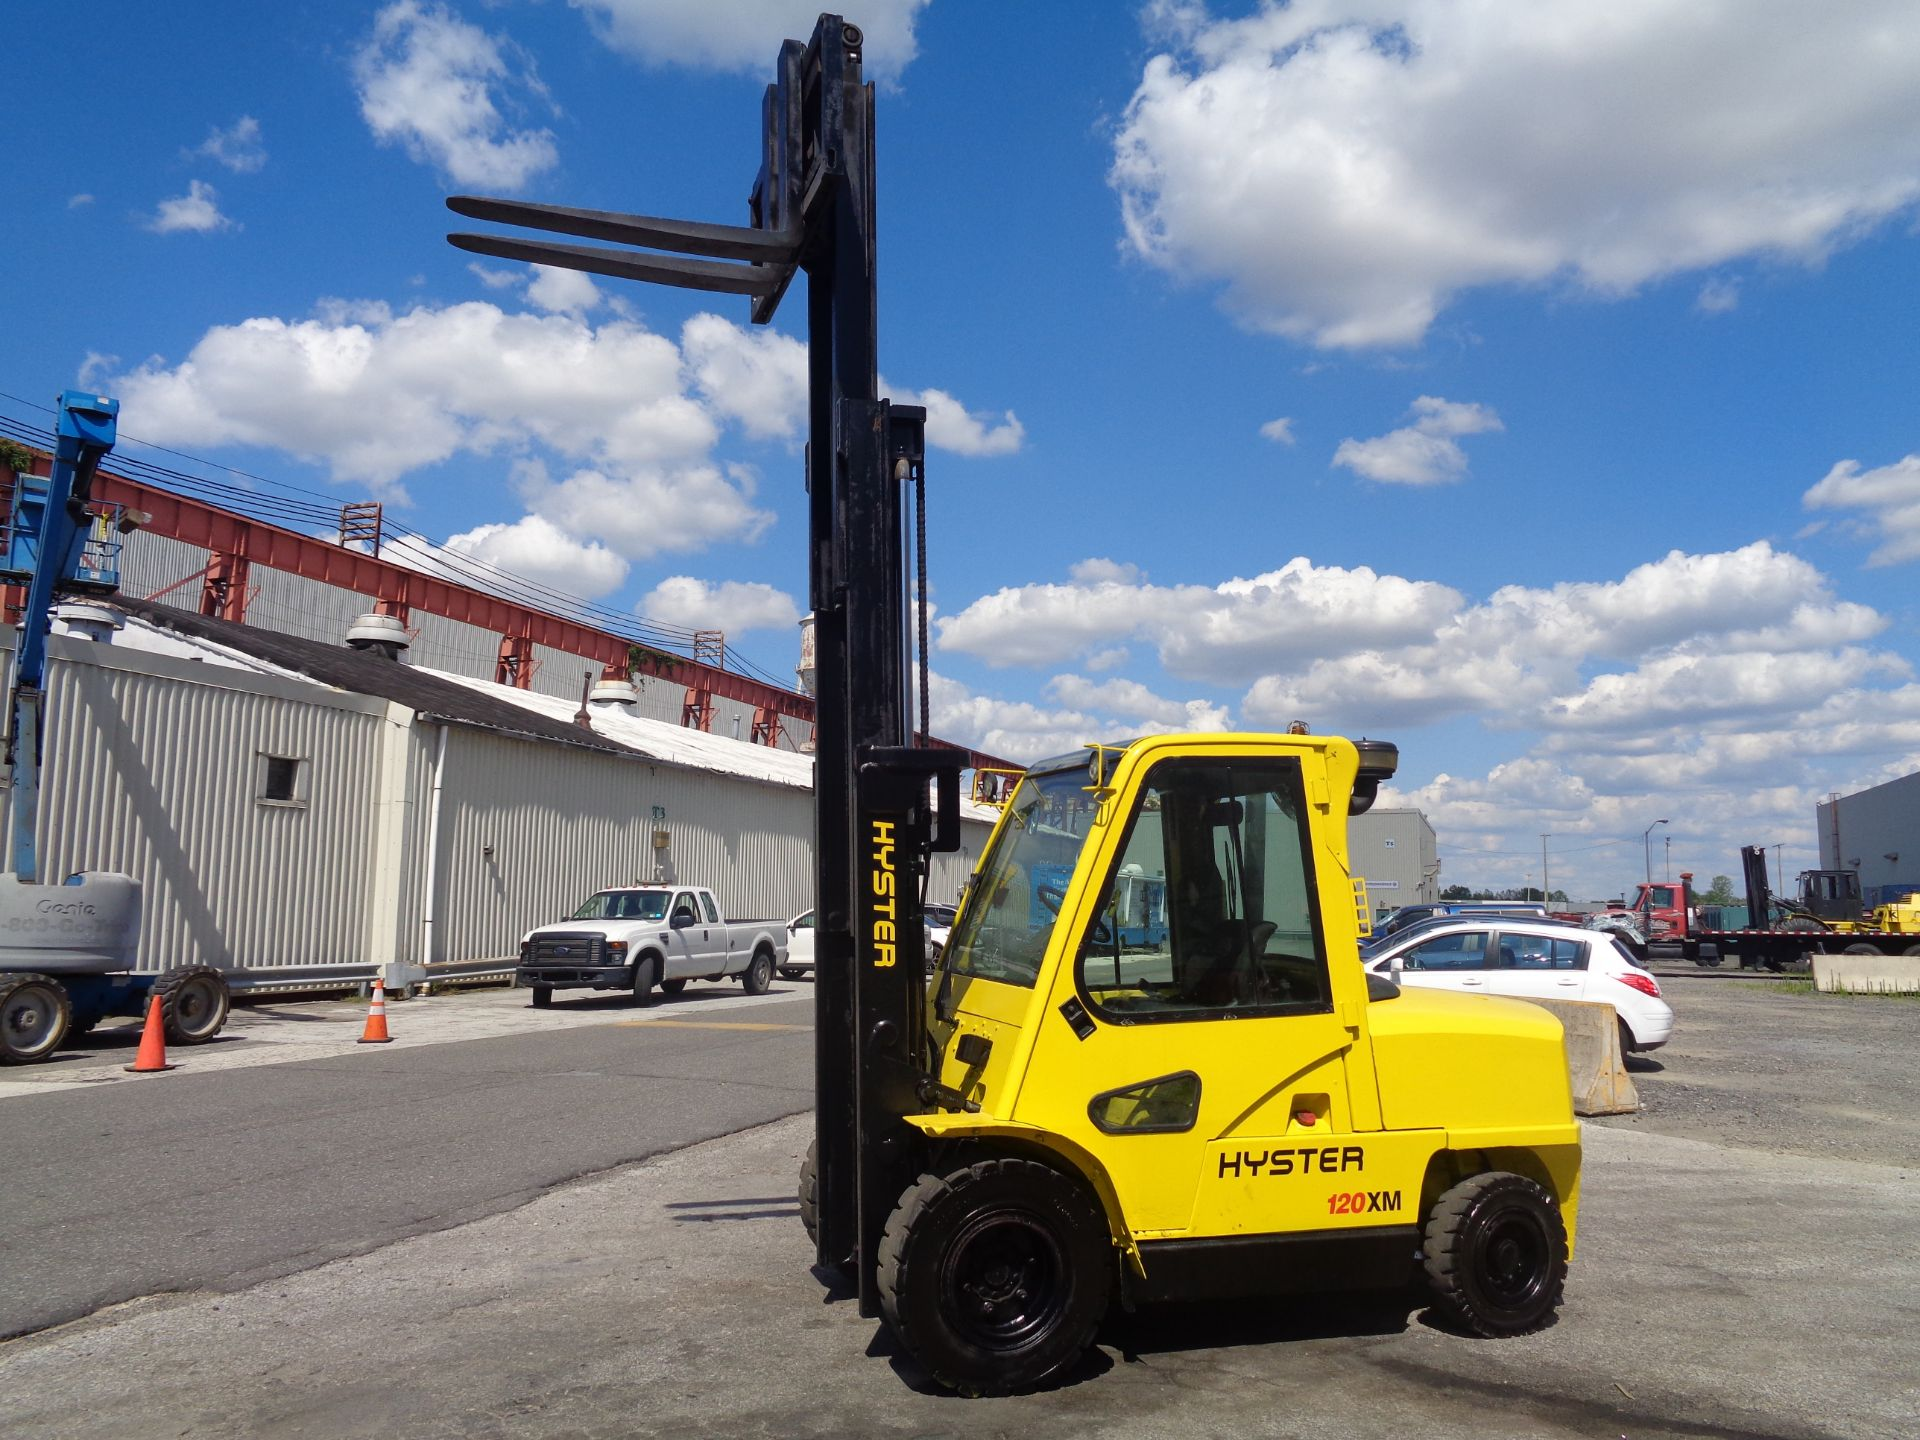 Hyster H120XL 12,000lb Forklift - Image 12 of 15